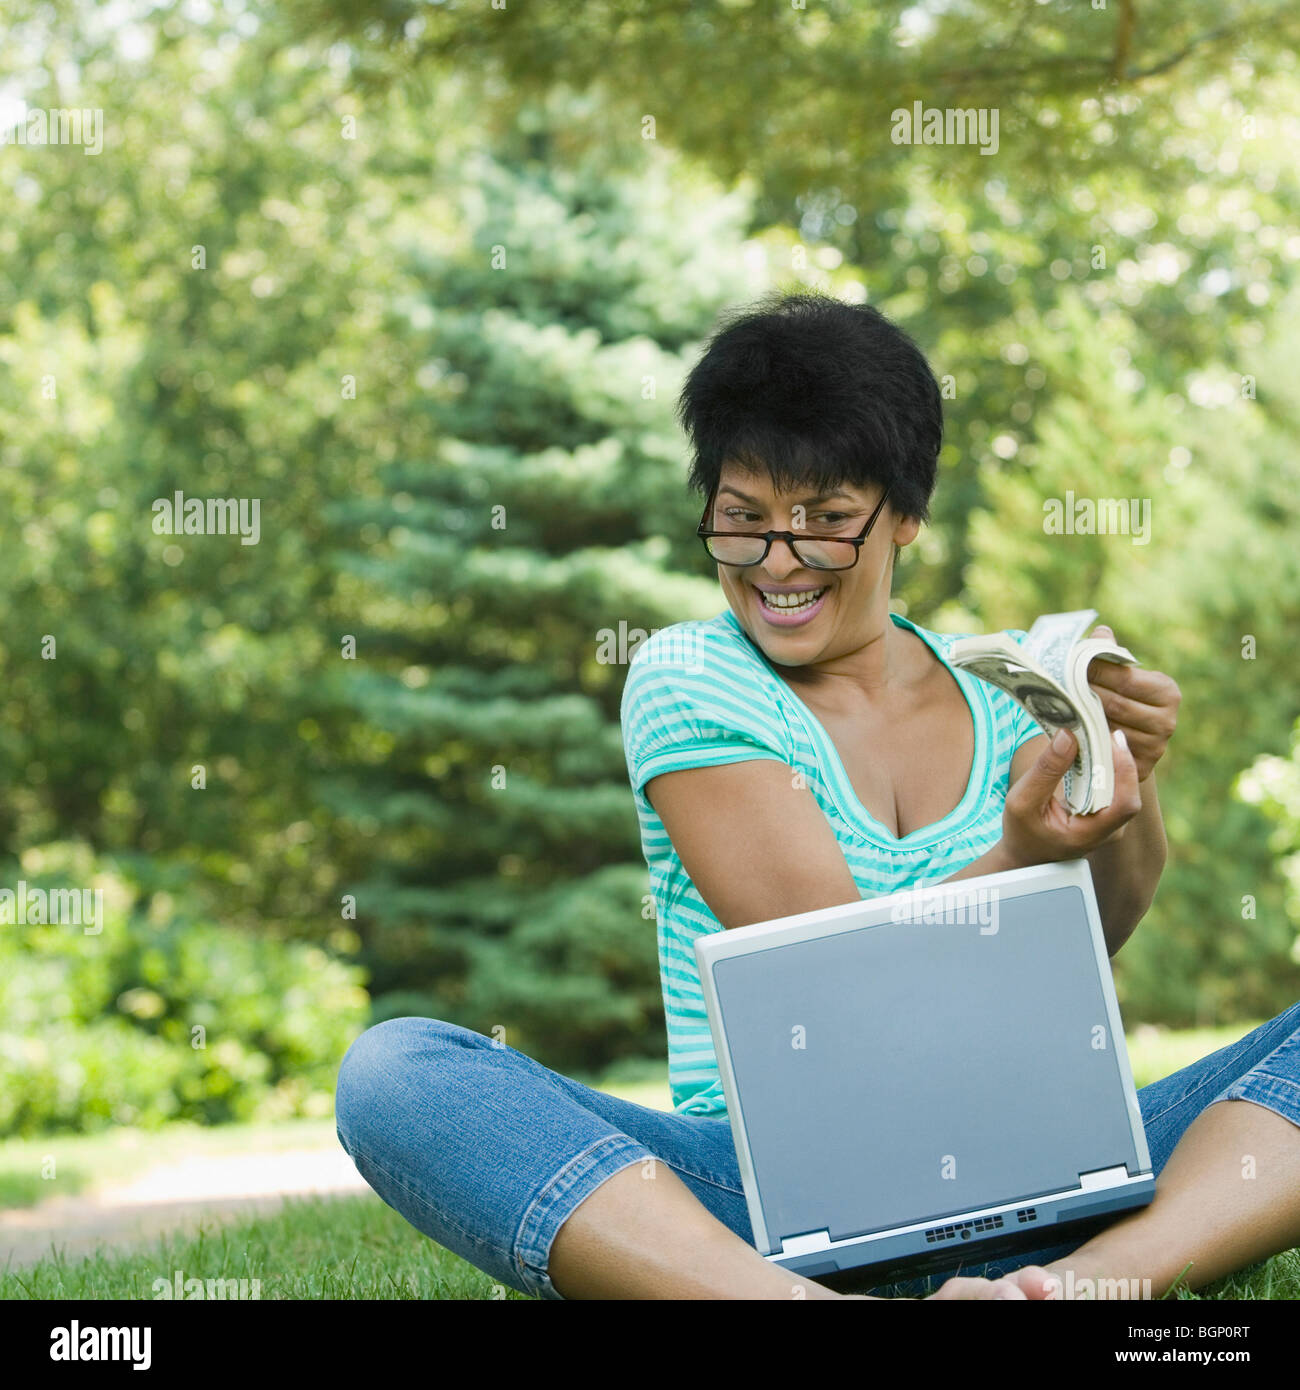 Mature woman sitting with a laptop and holding a wad of currency - Stock Image